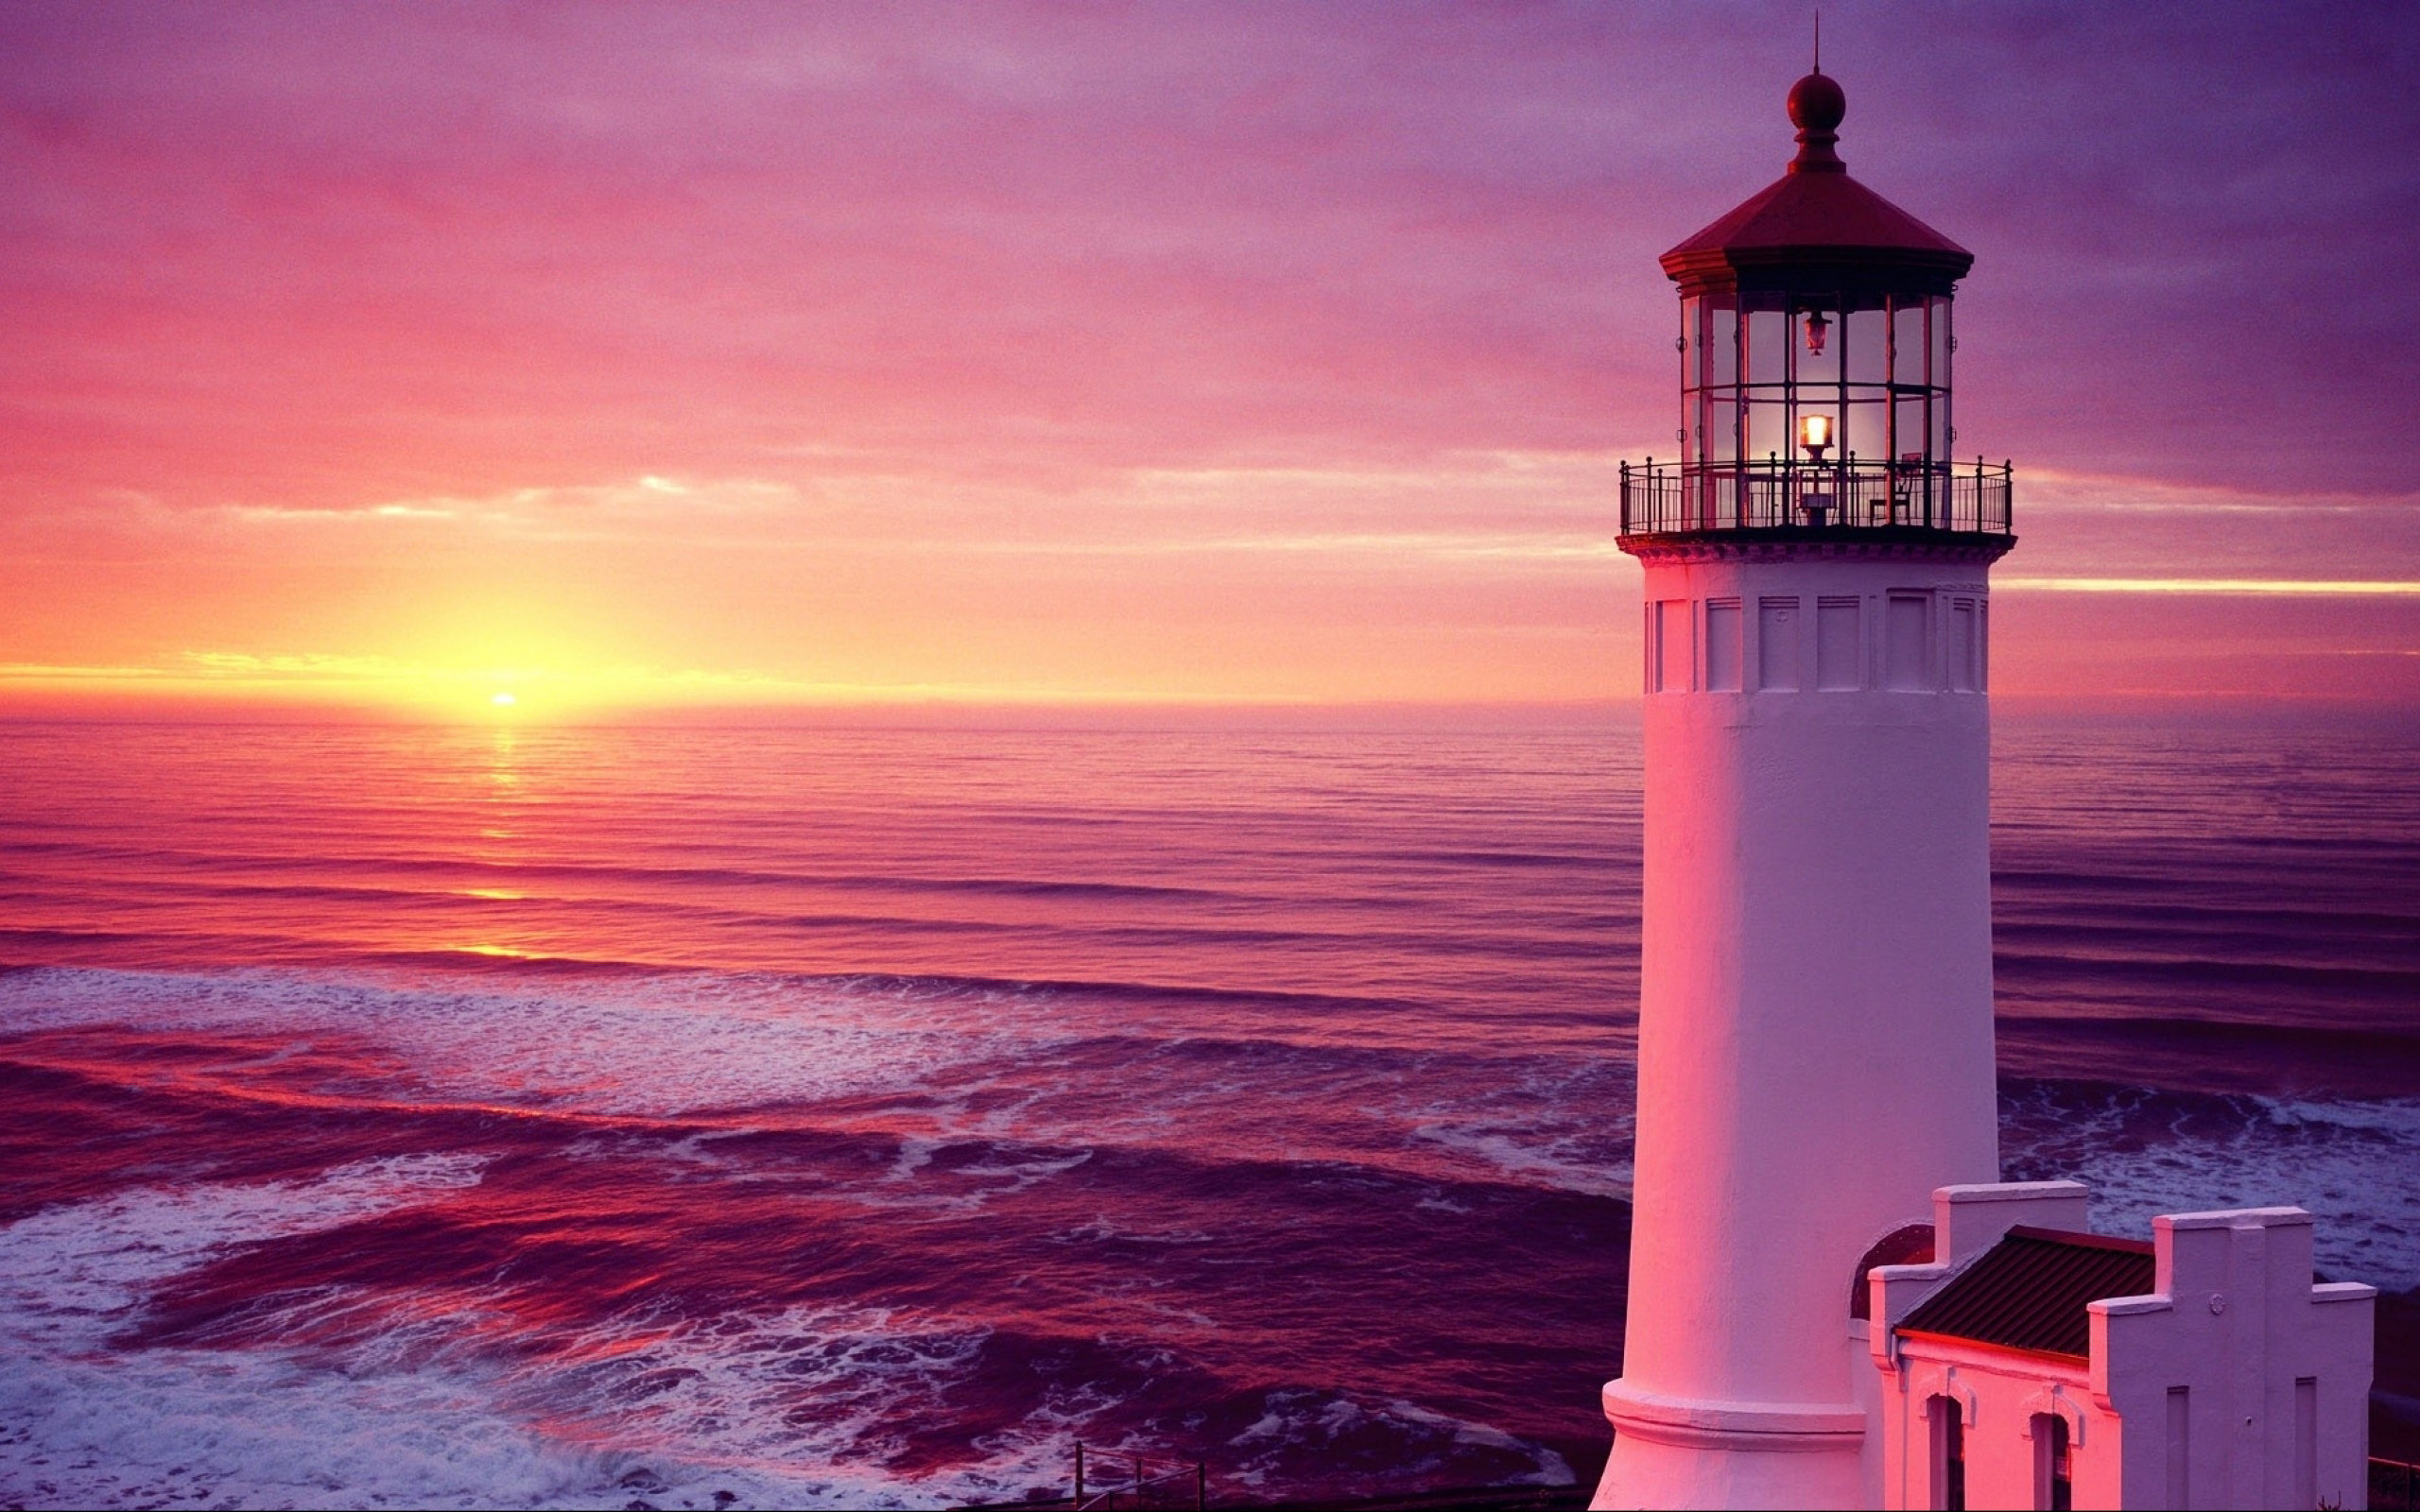 815 lighthouse hd wallpapers | backgrounds - wallpaper abyss